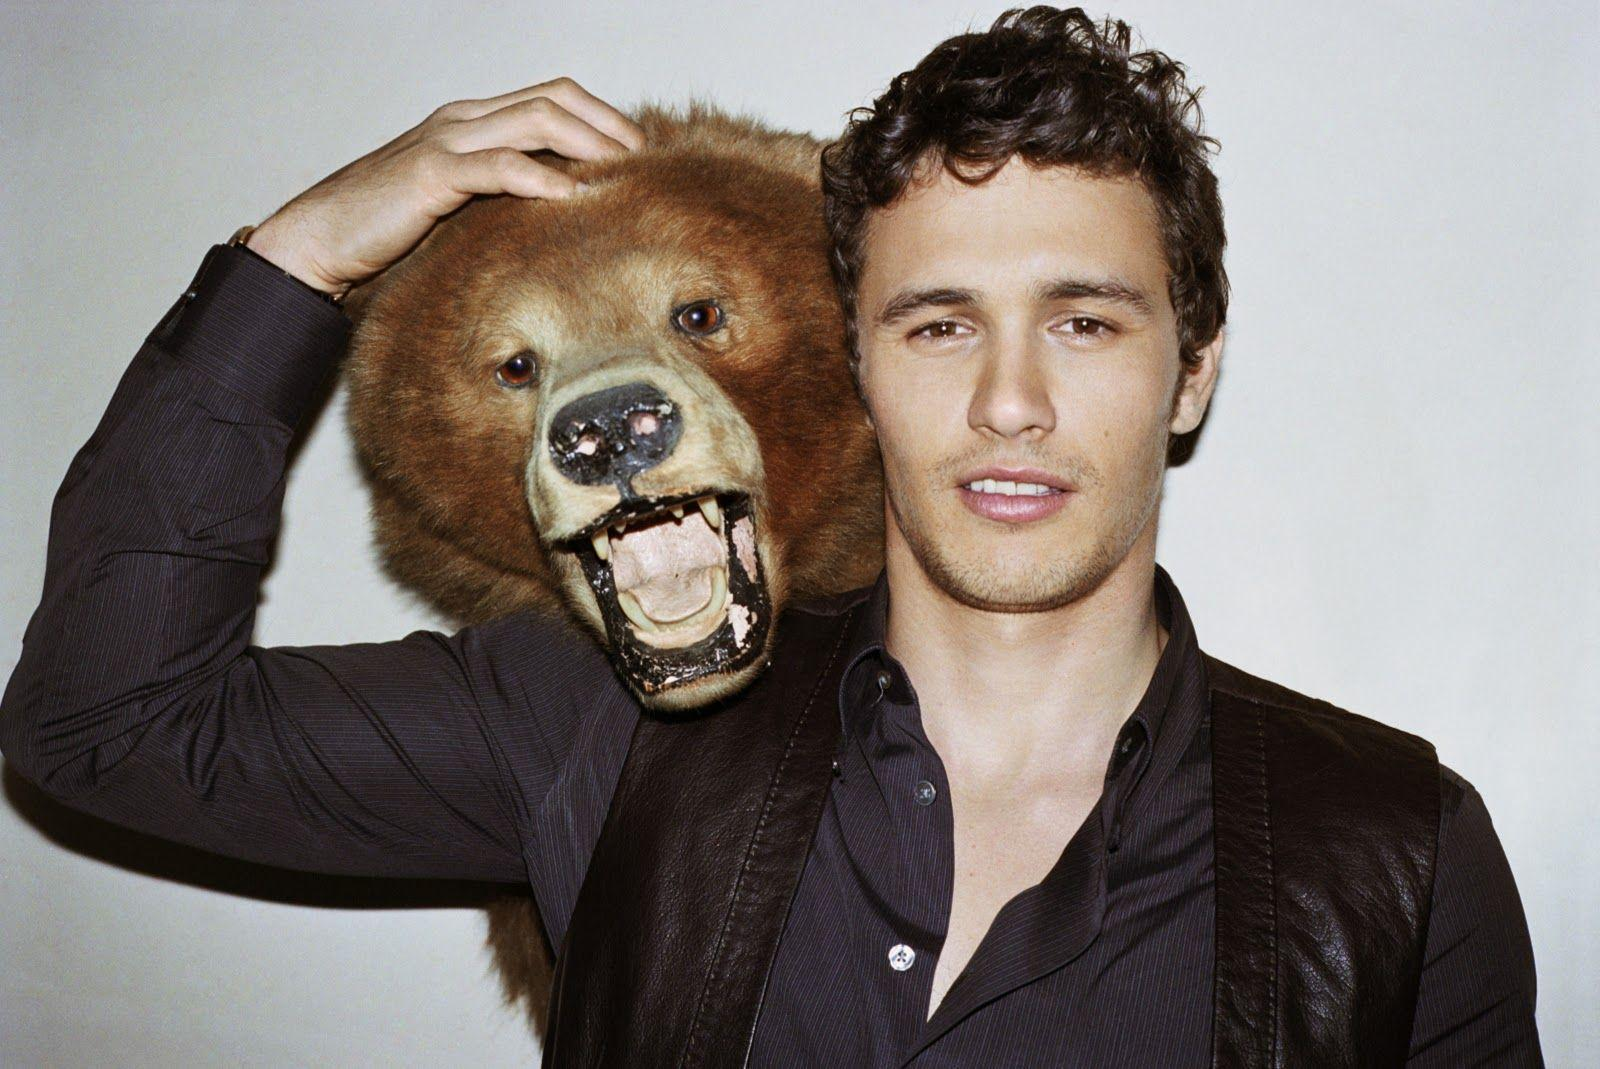 Multi Wallpapers Hd: Cool james franco photos 2015